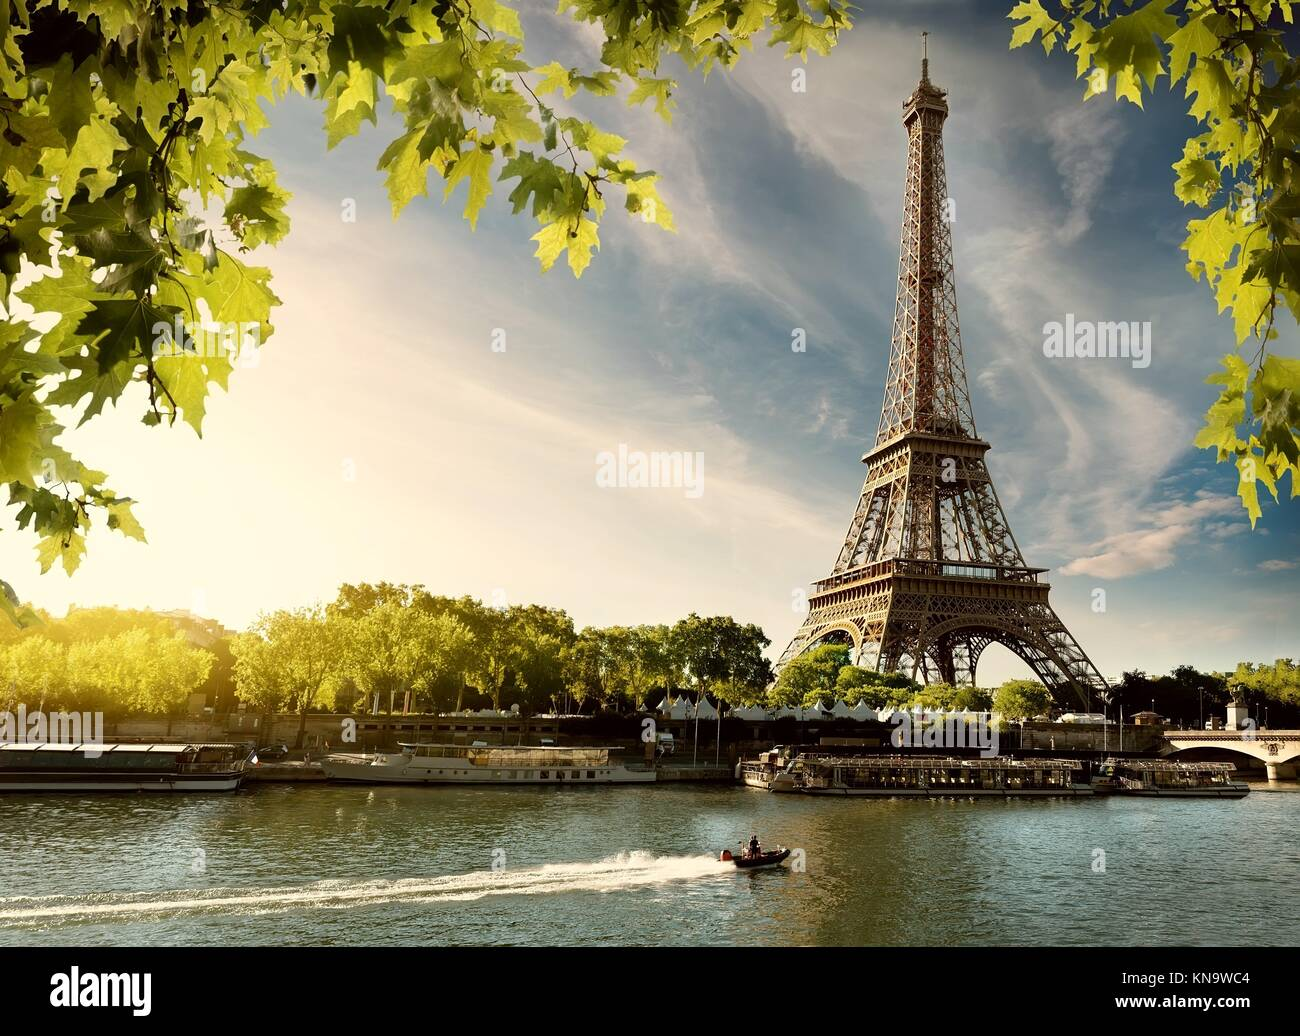 Sunset over Paris with the view on Eiffel Tower and river Seine, France. - Stock Image